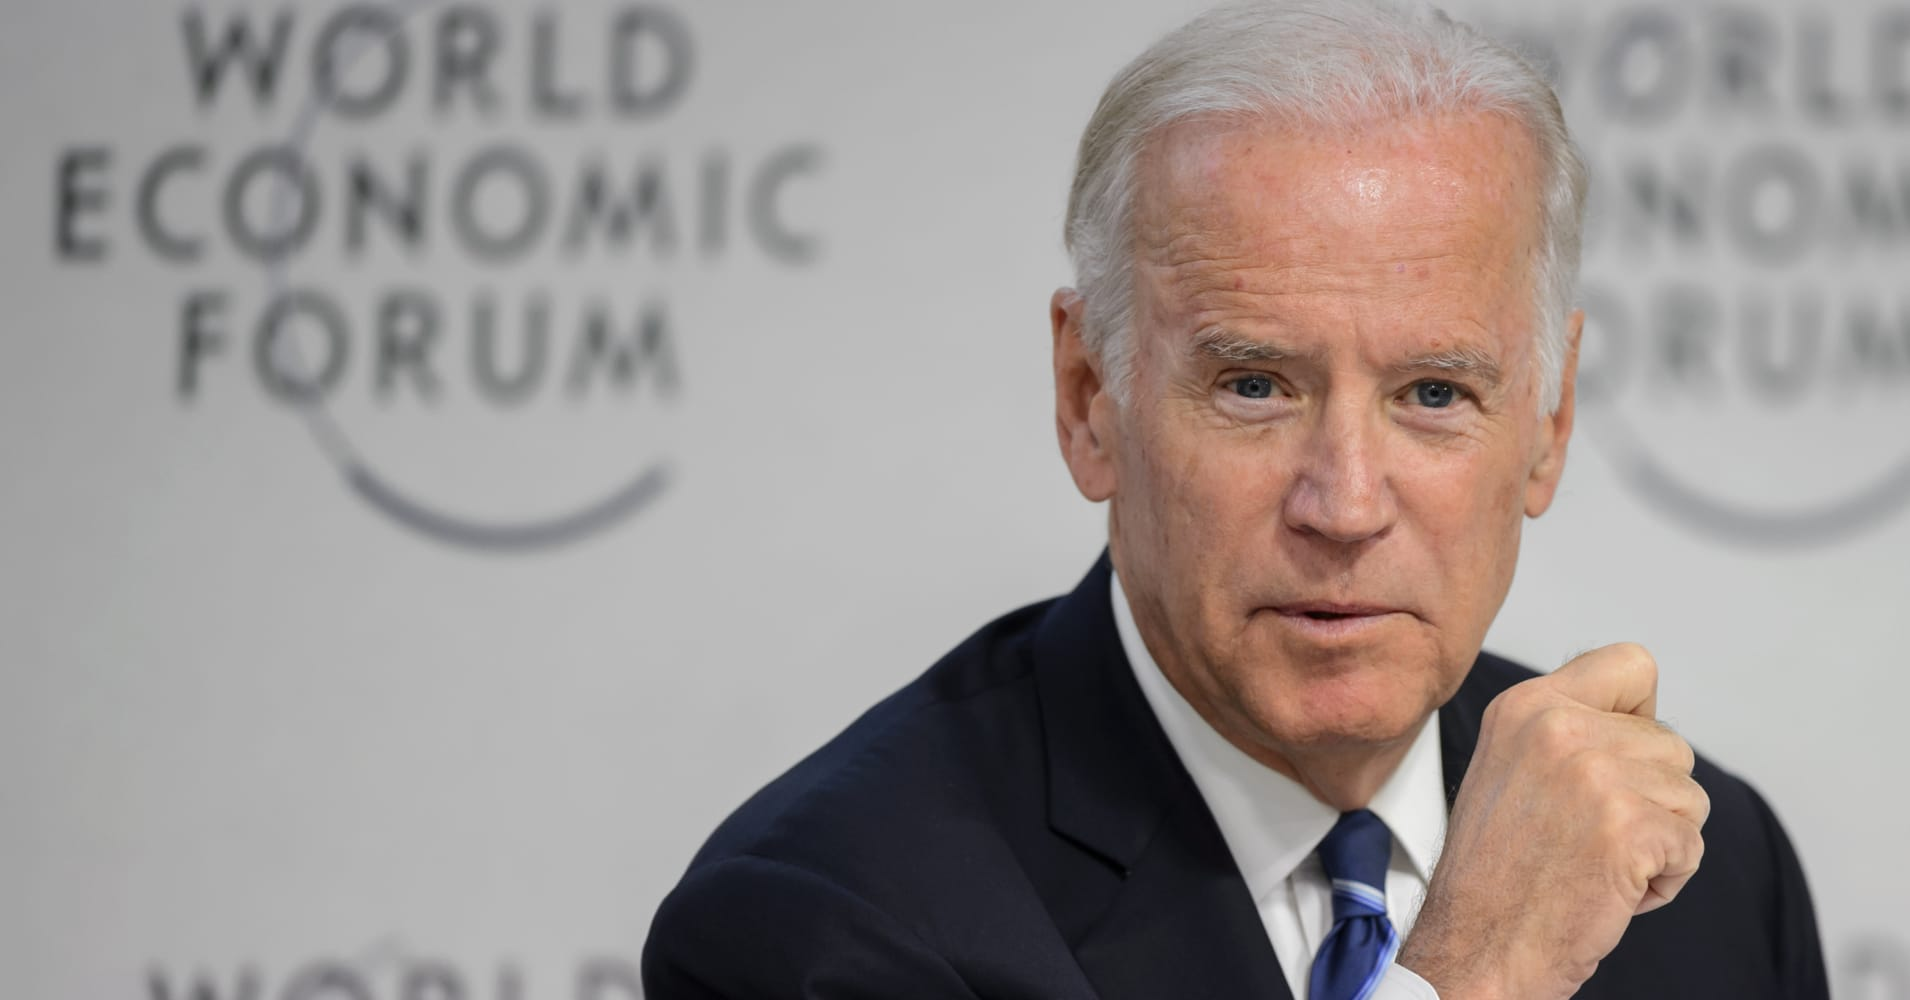 Polls show Joe Biden entering the Democratic primary with a significant lead